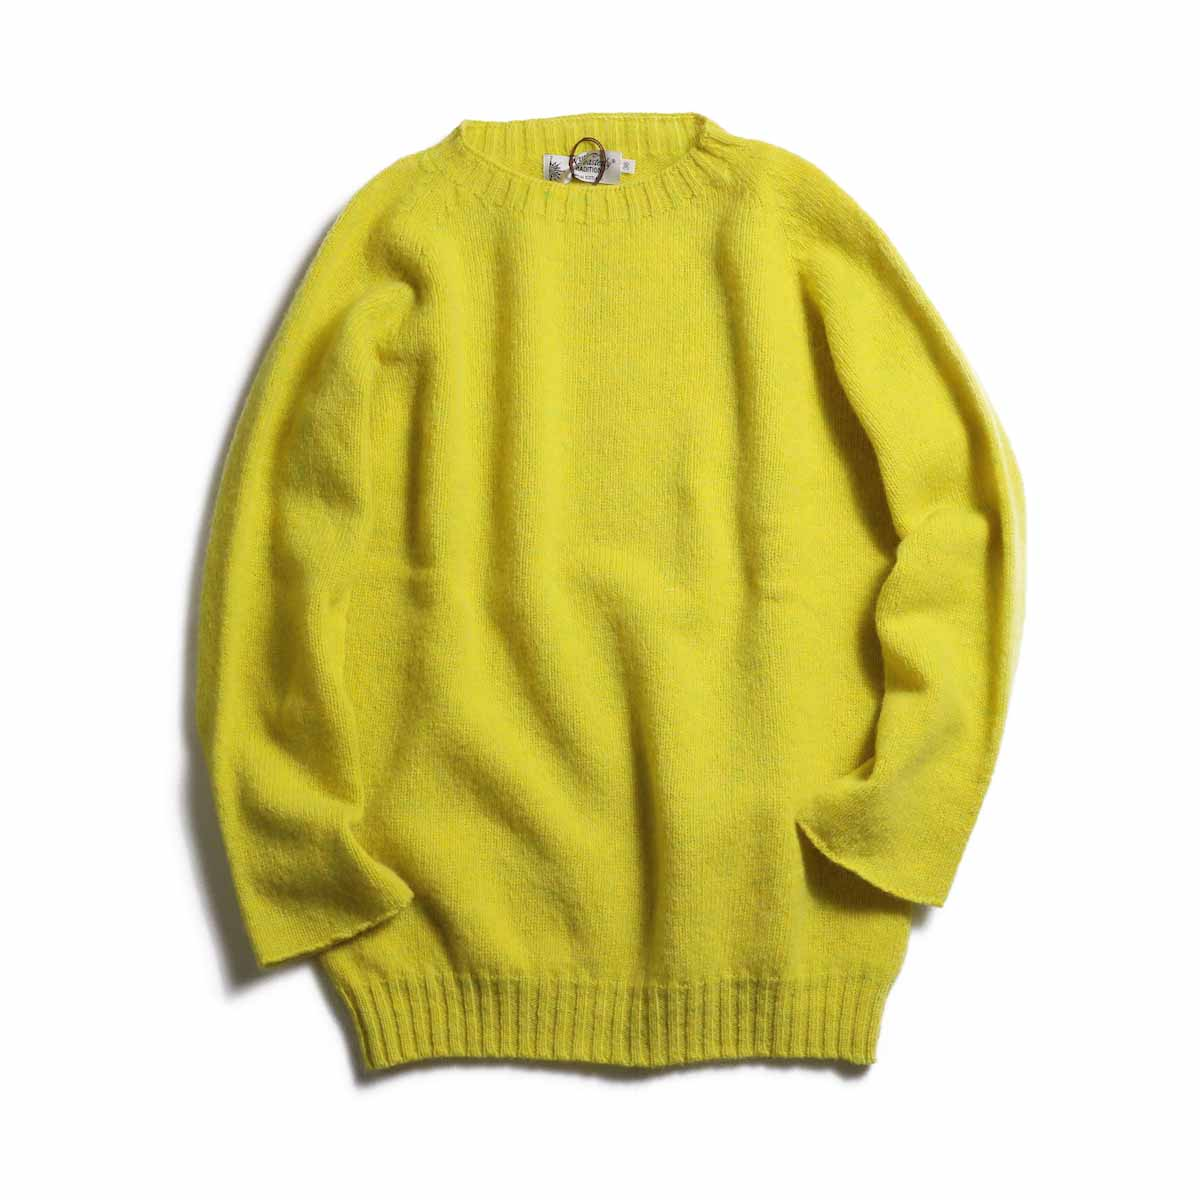 NOR'EASTERLY / L/S Crew Neck Knit -YELLOW